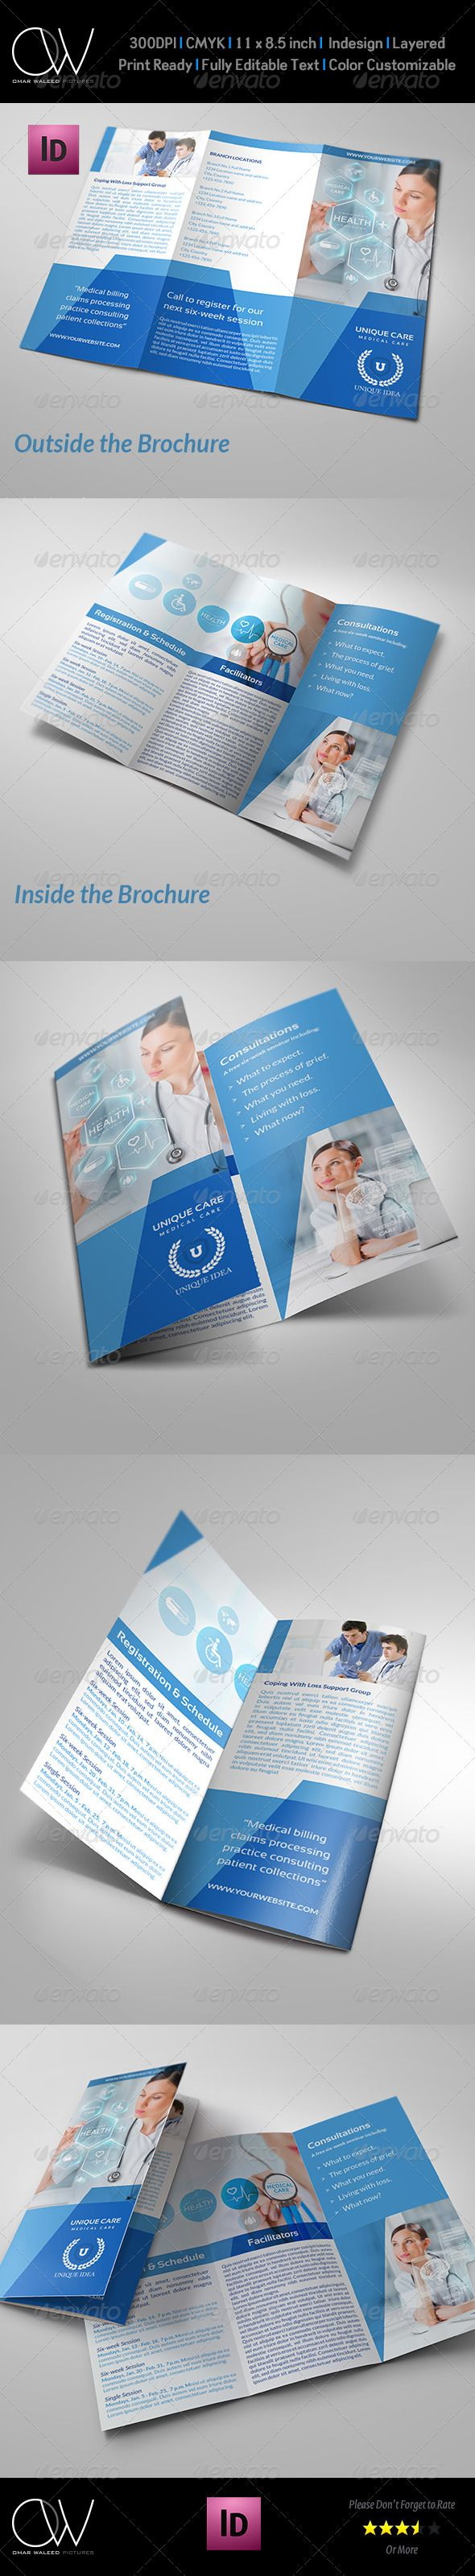 Delighted 1 Button Template Huge 1 Inch Hexagon Template Shaped 10 Off Coupon Template 17 Year Old Resume Sample Young 2 Page Resume Examples Green2 Page Resume Format Dental Clinic Tri Fold Brochure | Print..